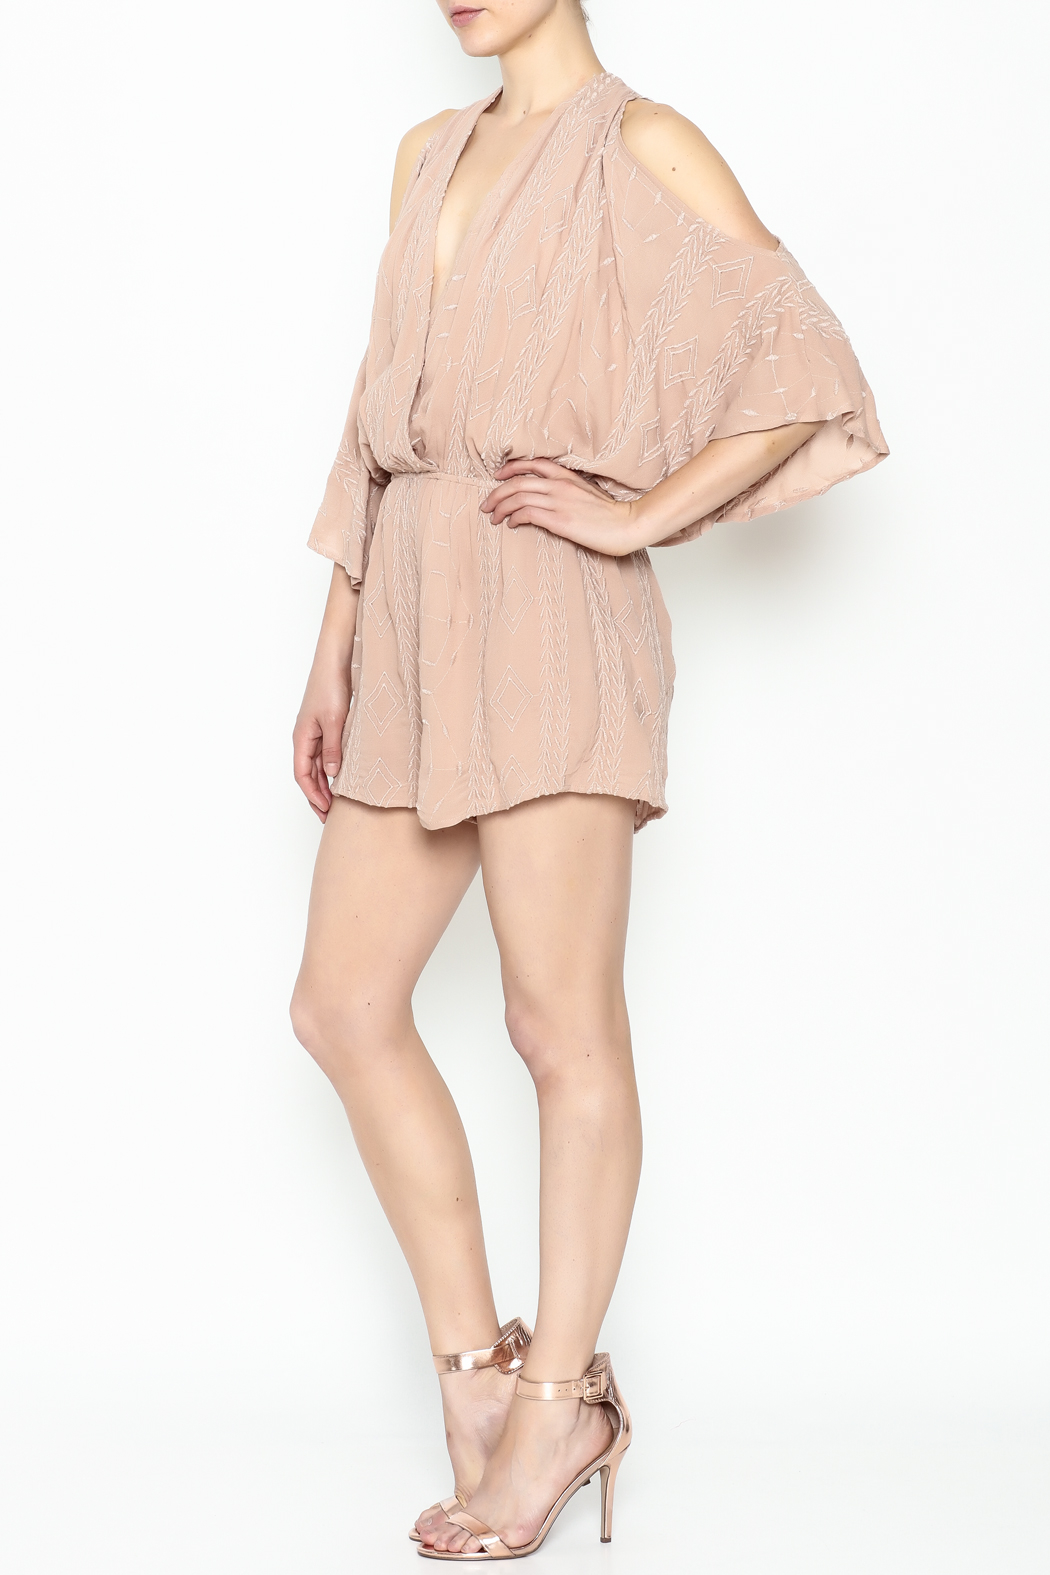 Audrey 3+1 Blush Embroidered Romper - Side Cropped Image